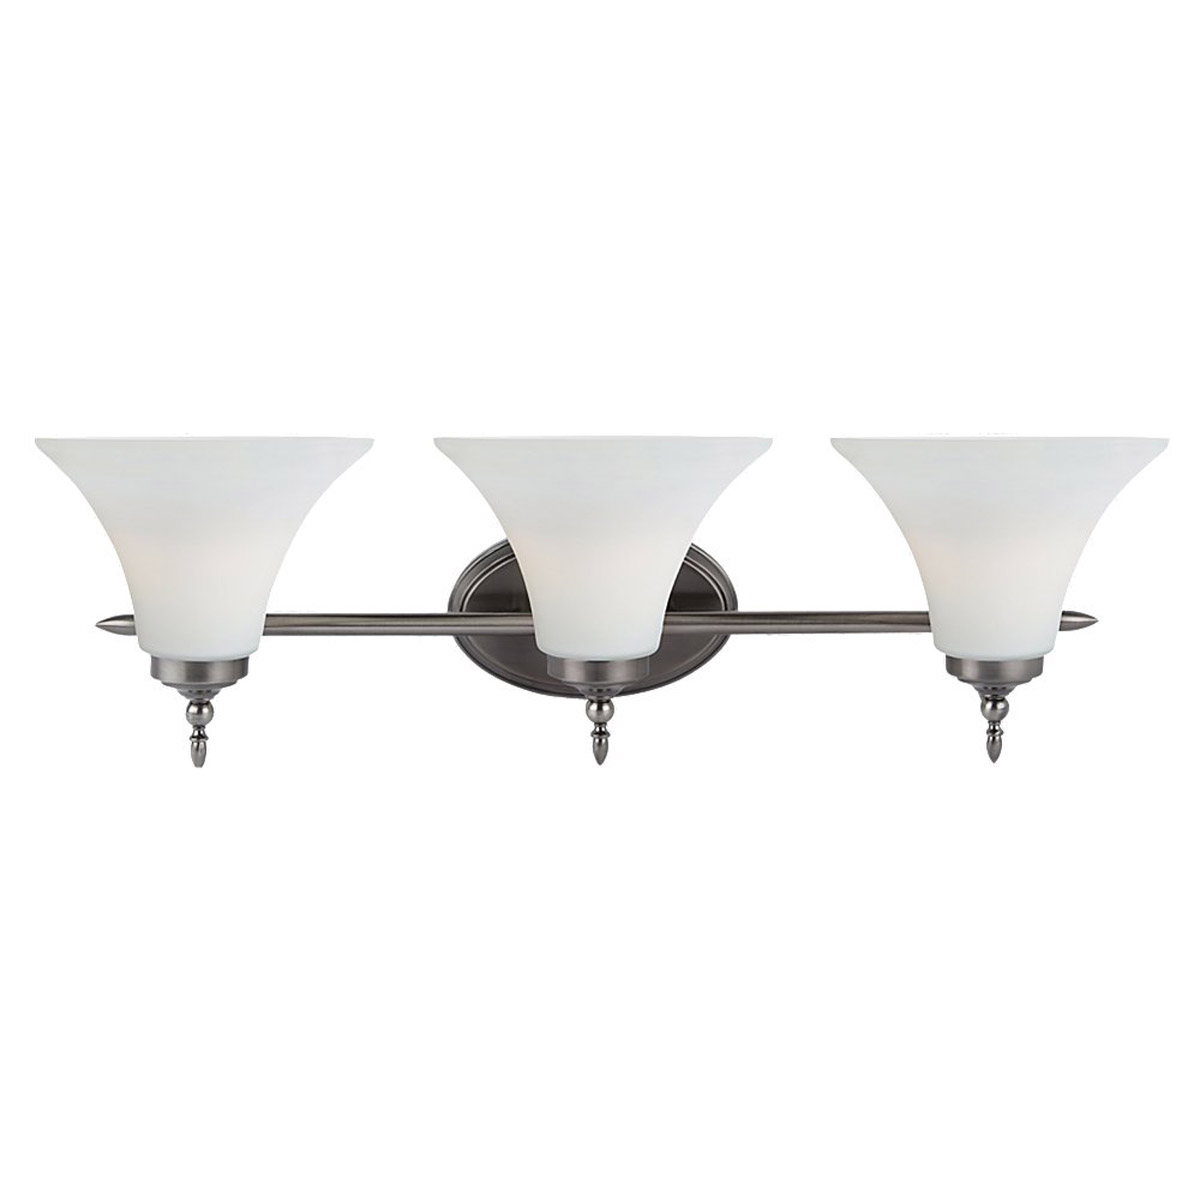 Sea Gull Lighting Montreal 3 Light Bath Vanity in Antique Brushed Nickel 41182BLE-965